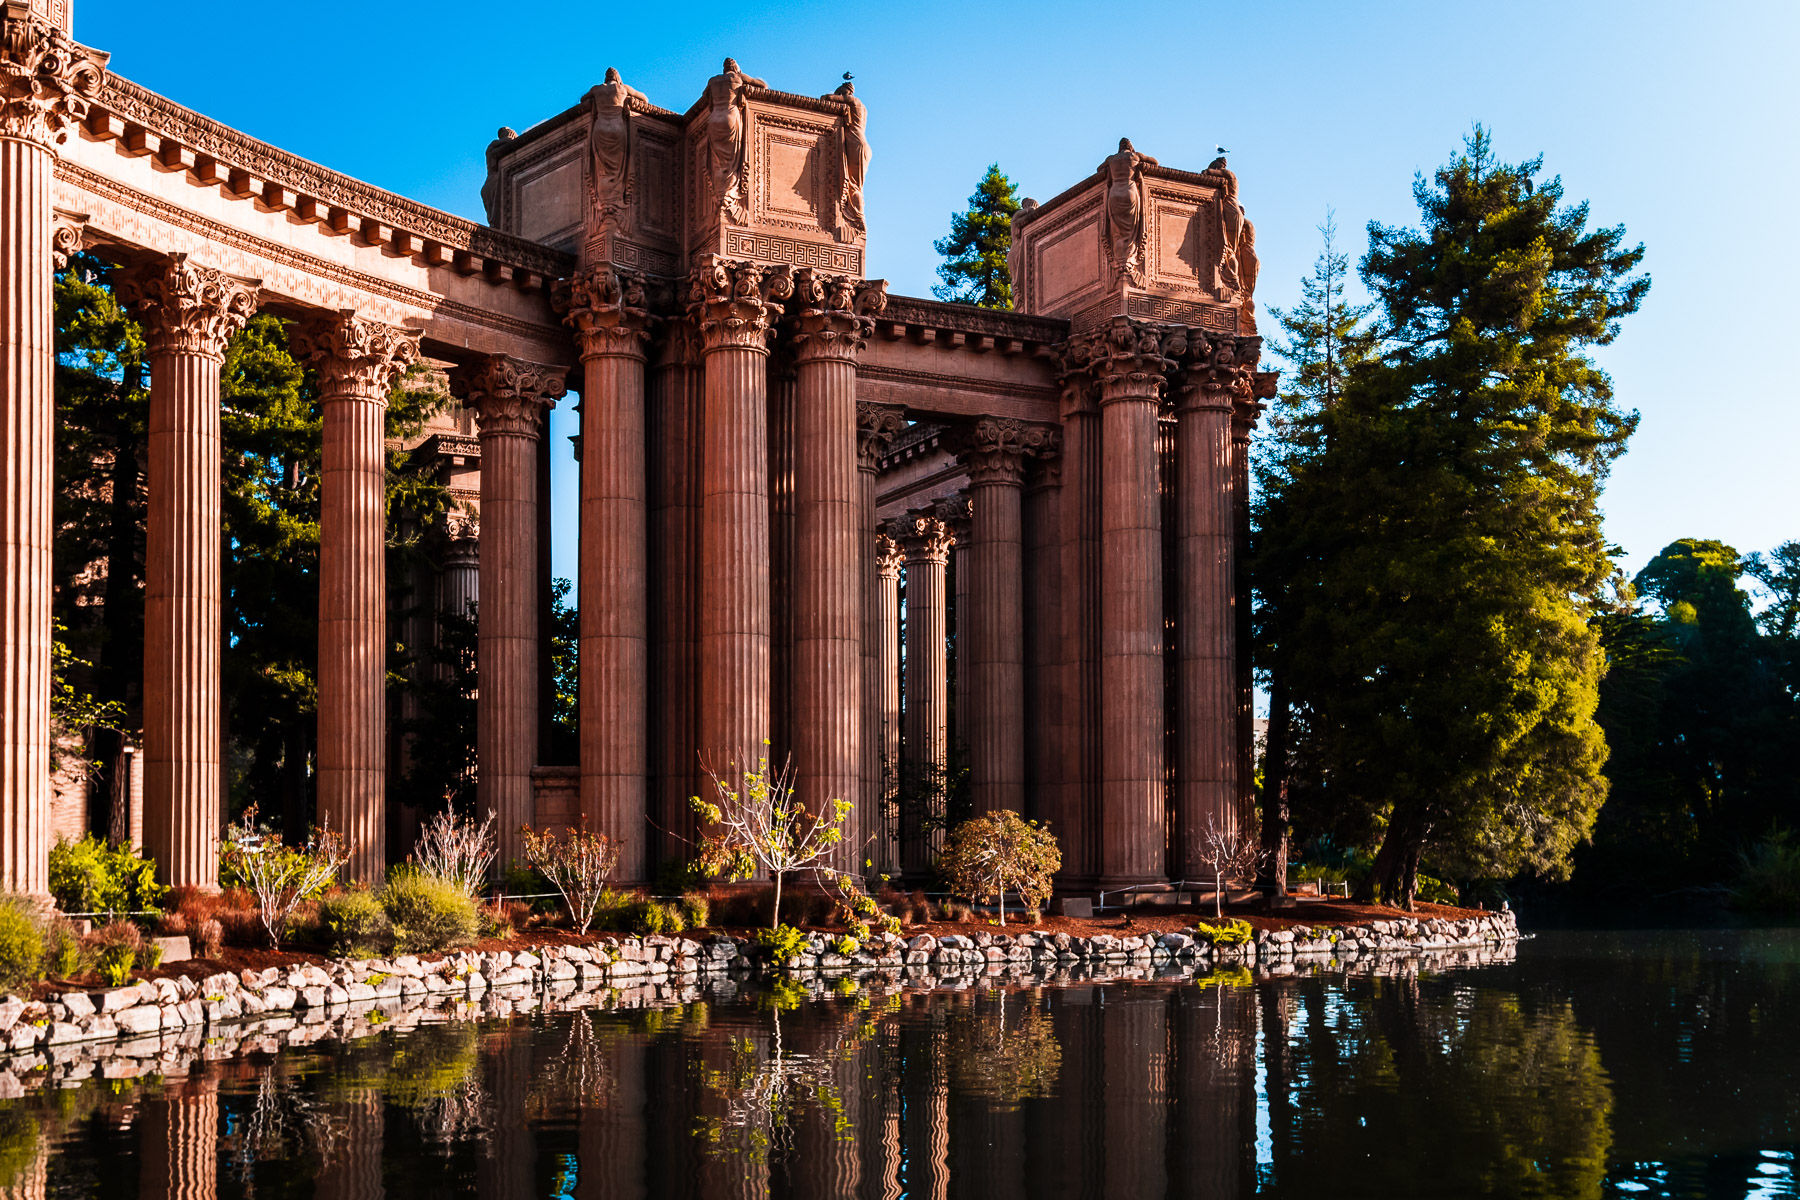 The morning sun lights the ornate columns of San Francisco's Palace of Fine Arts.